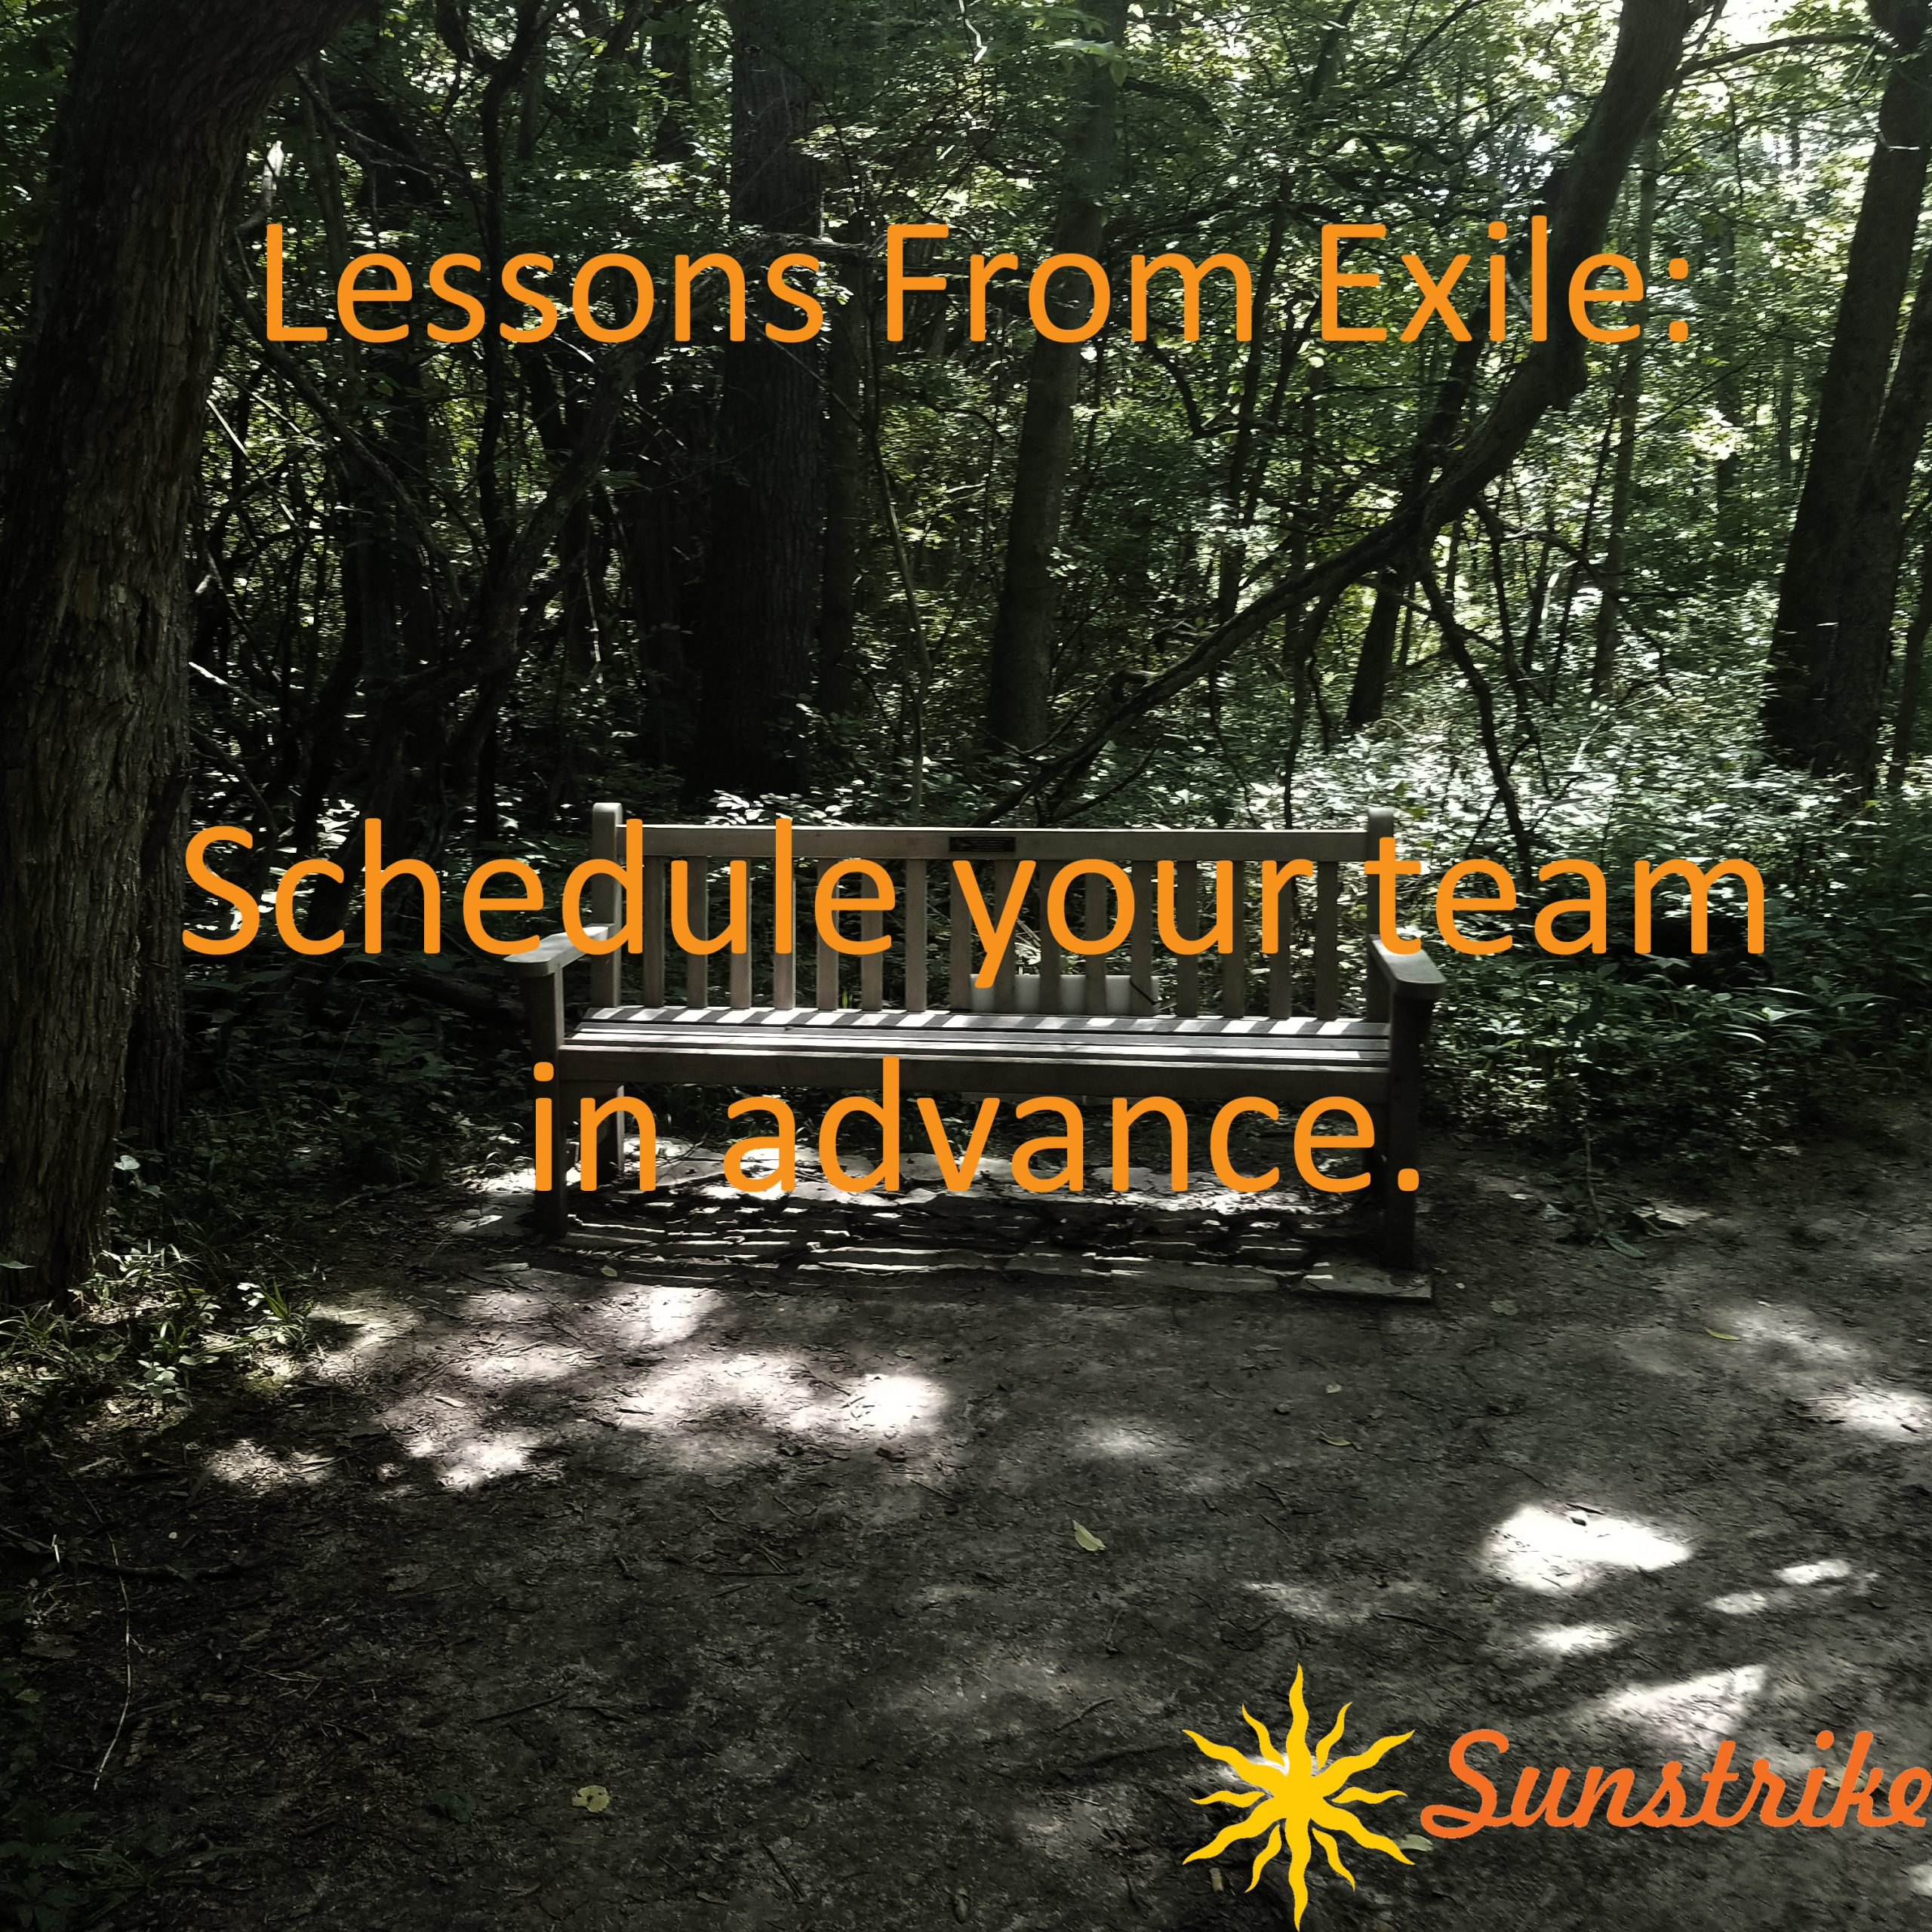 Lessons from Exile #1: Schedule your team in advance.